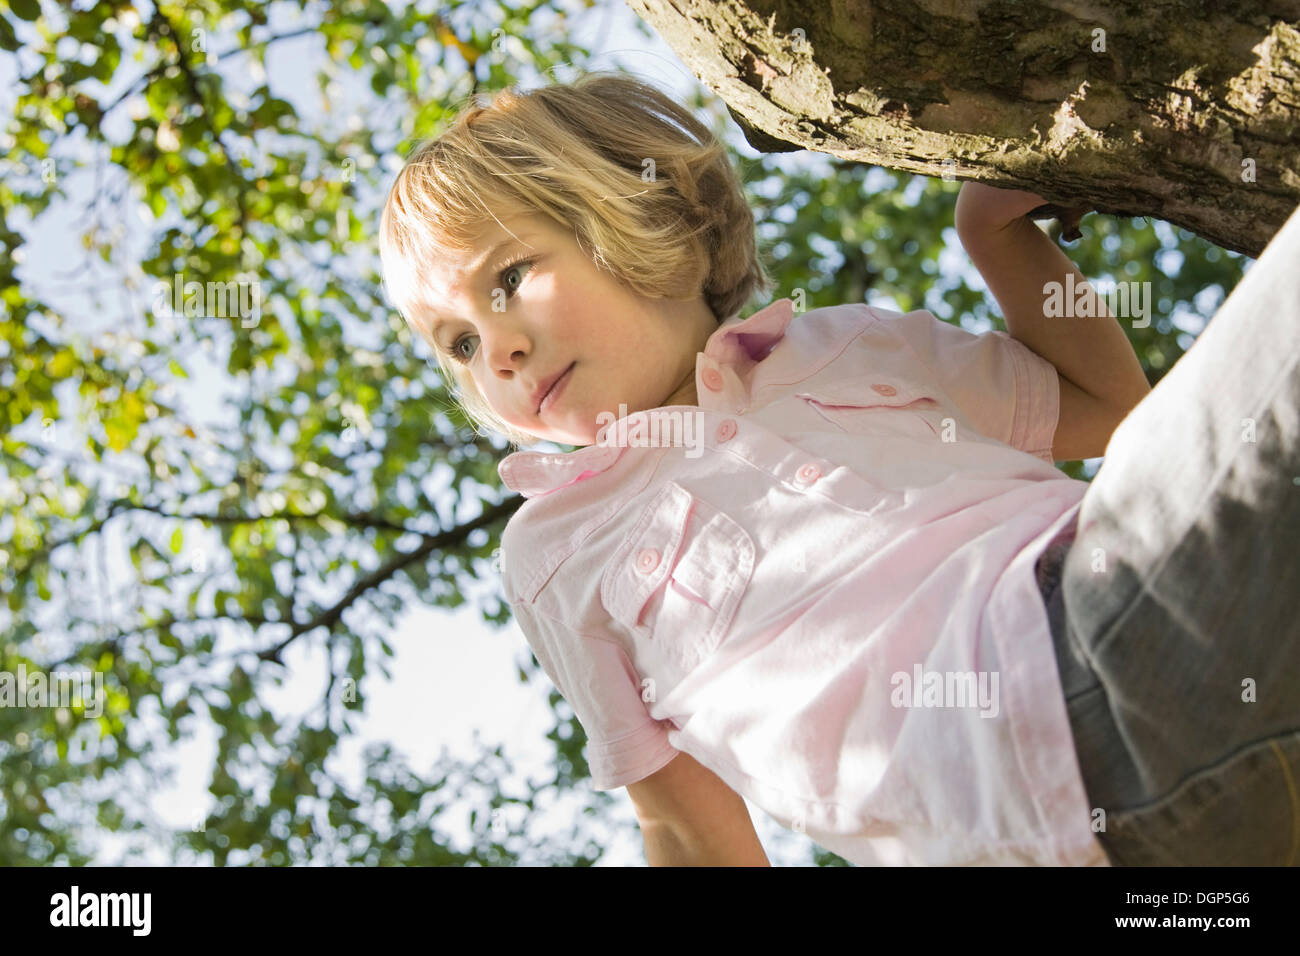 Girl sitting on a tree - Stock Image